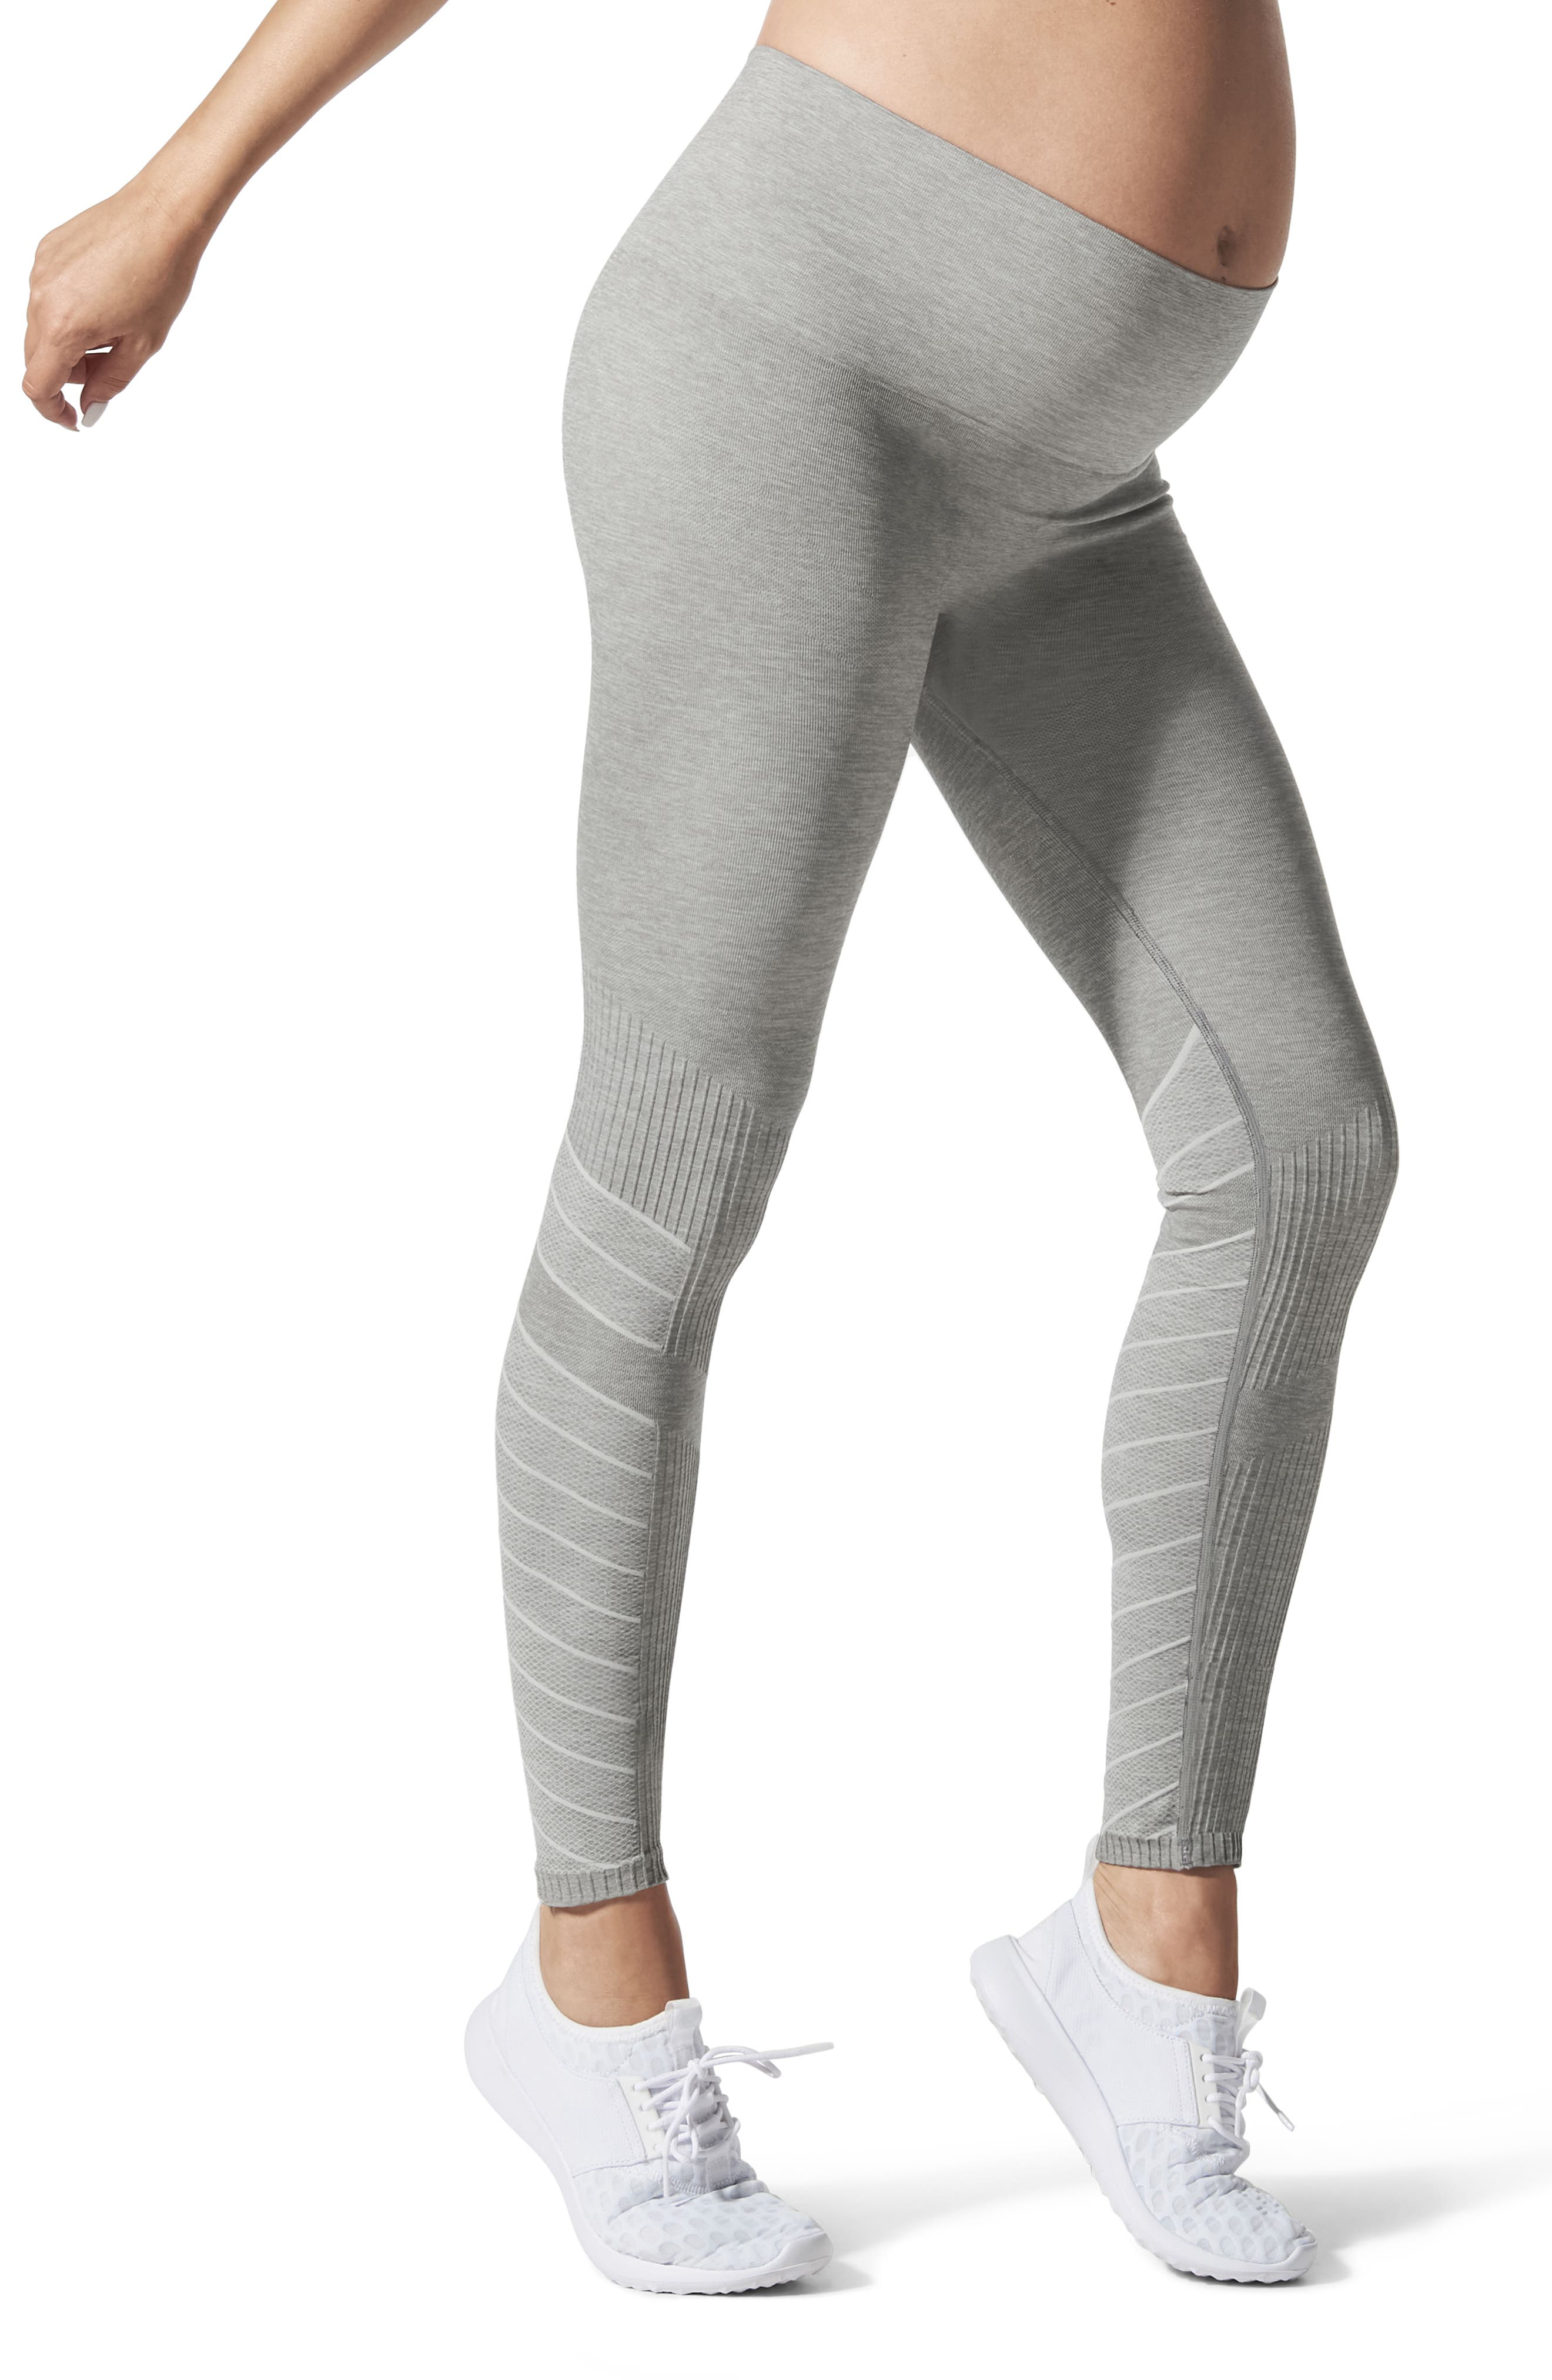 Women's Blanqi Sportsupport Hipster Cuff Contour Support Maternity/postpartum Leggings